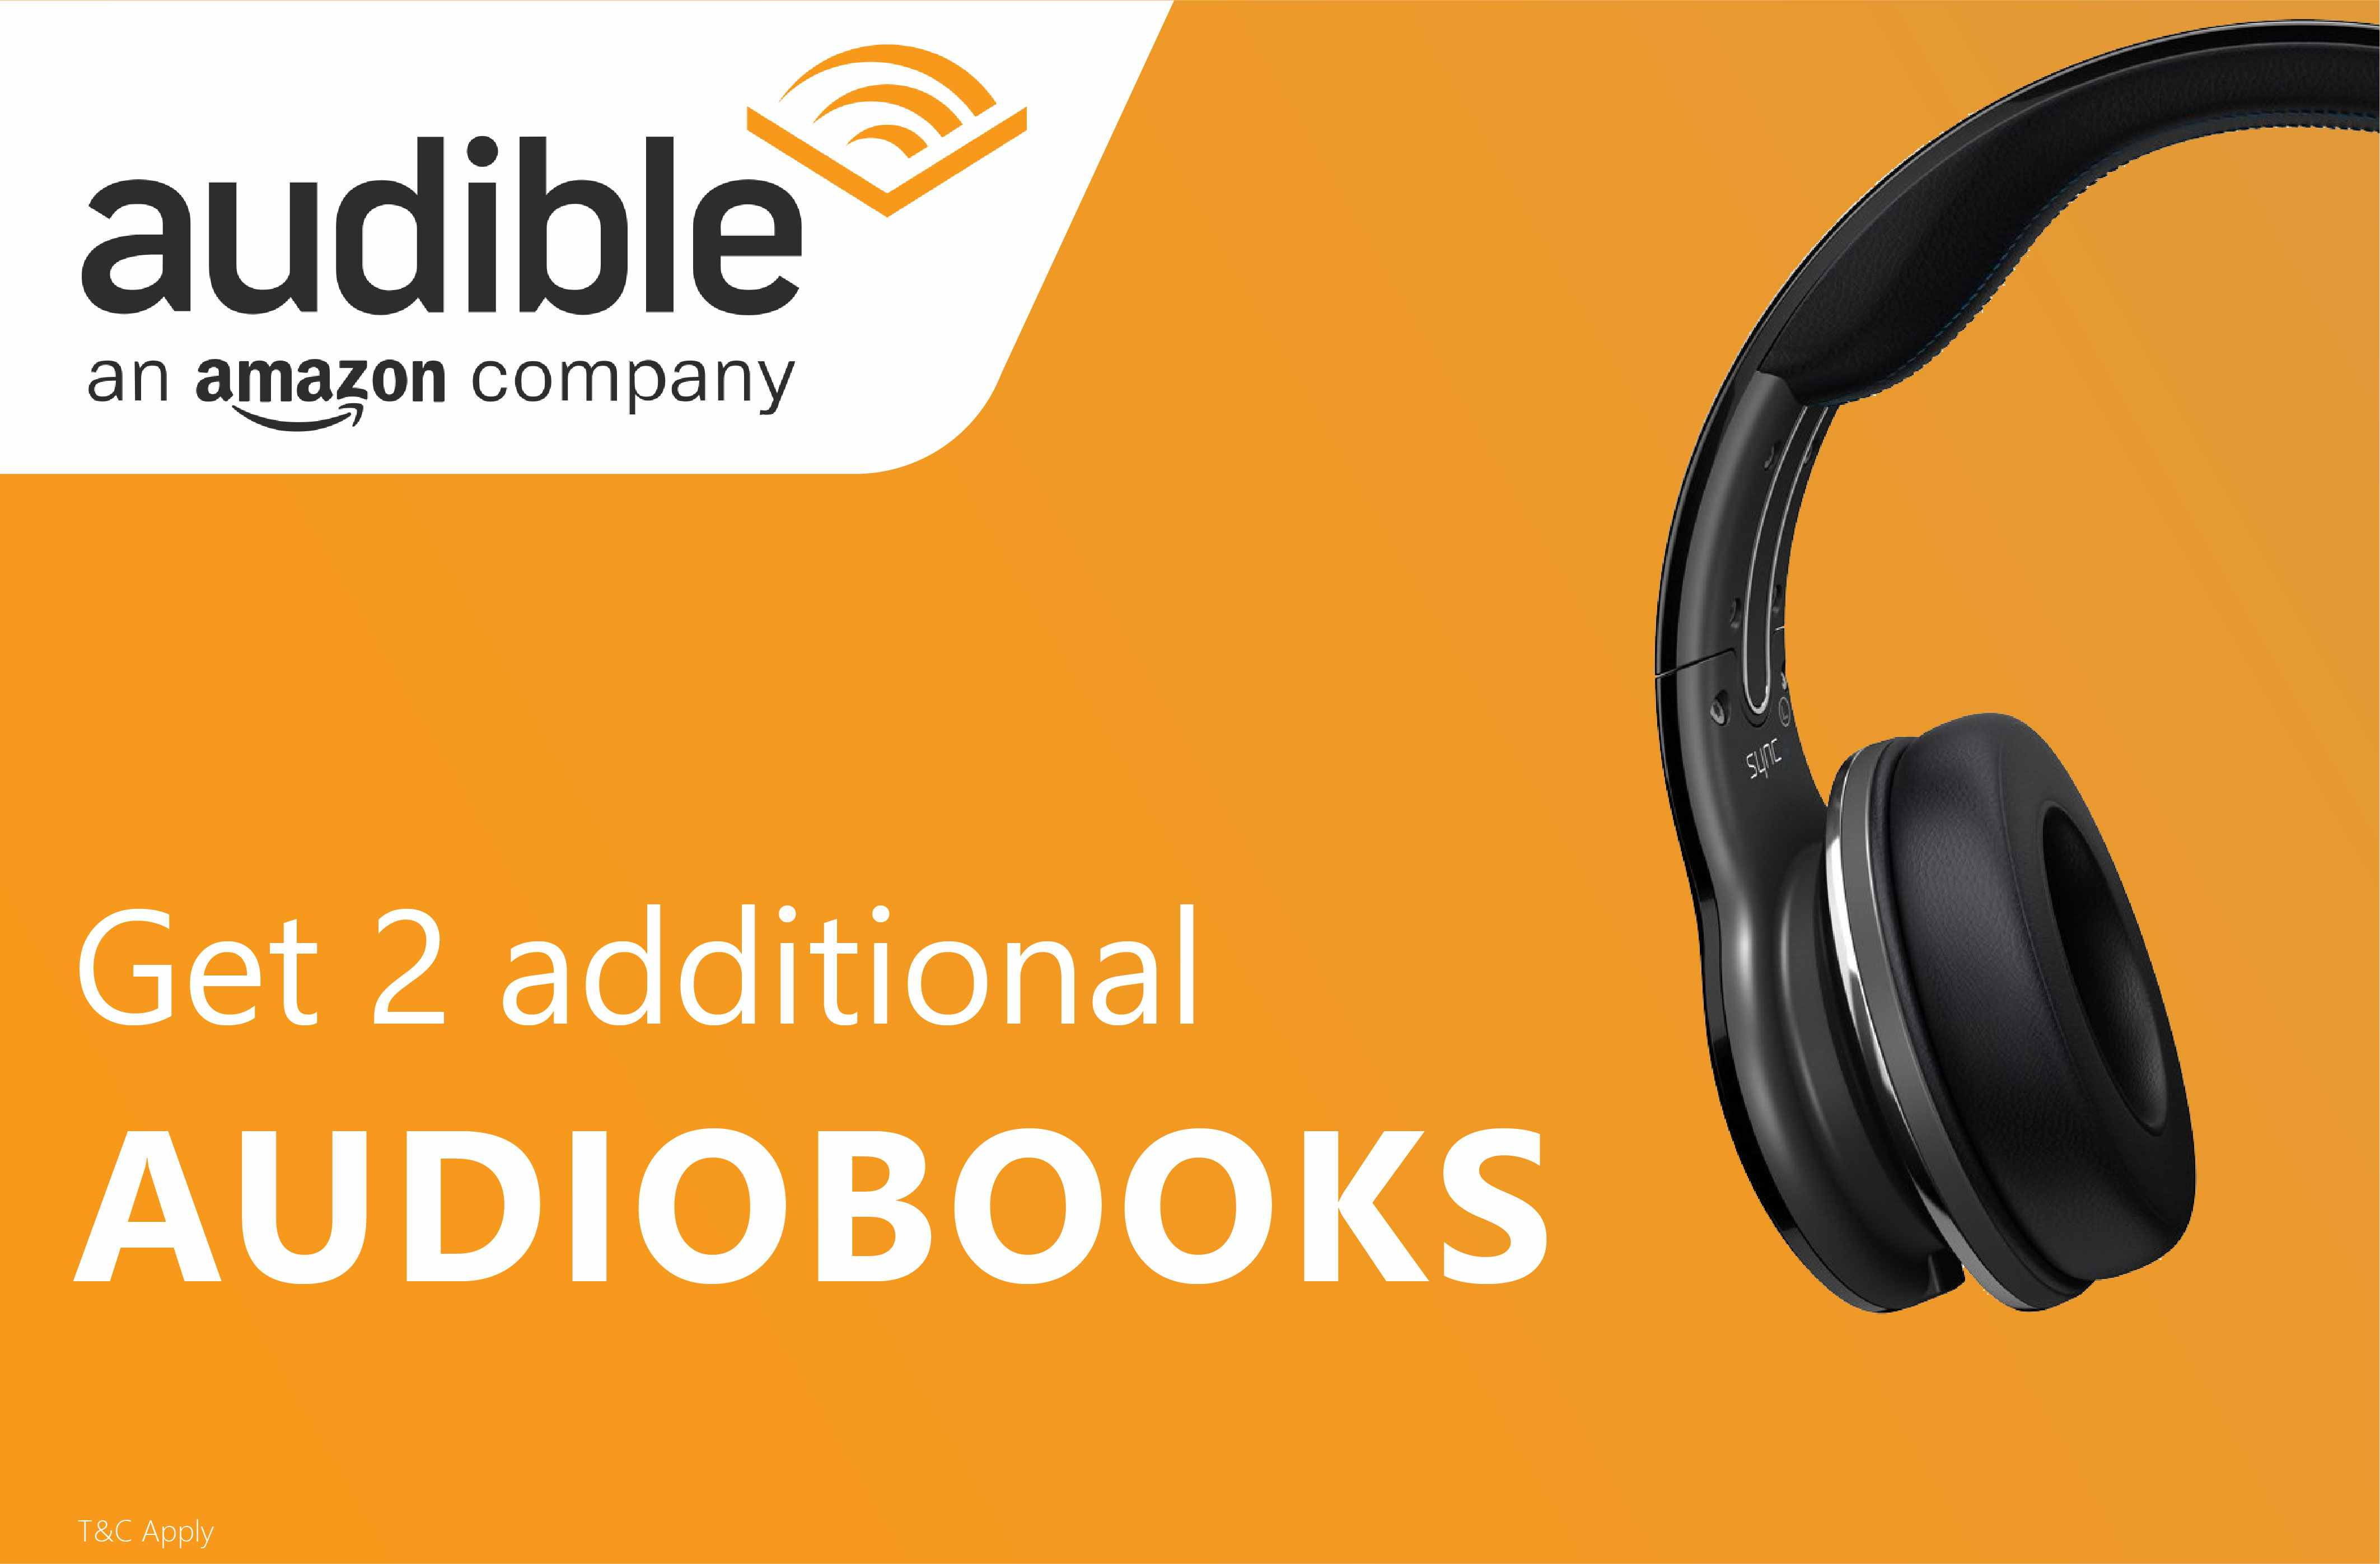 Get 2 additional audiobooks from Audible